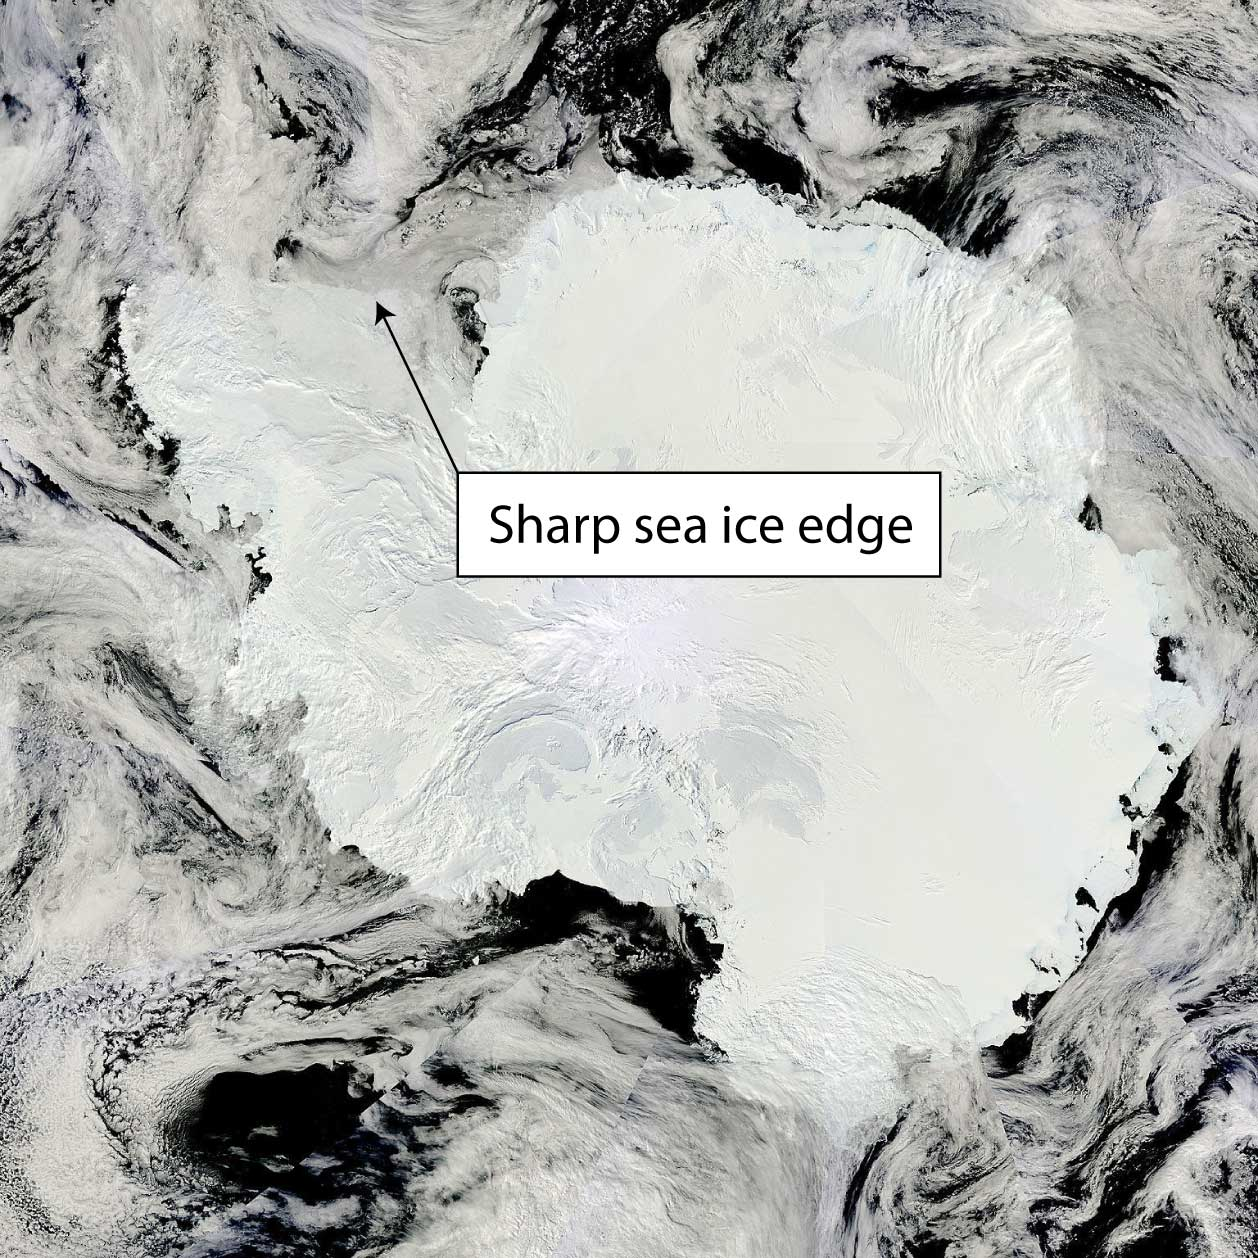 MODIS image from the TERRA satellite 23 January 2017. The sea ice edge in the Weddell Sea is very sharp.